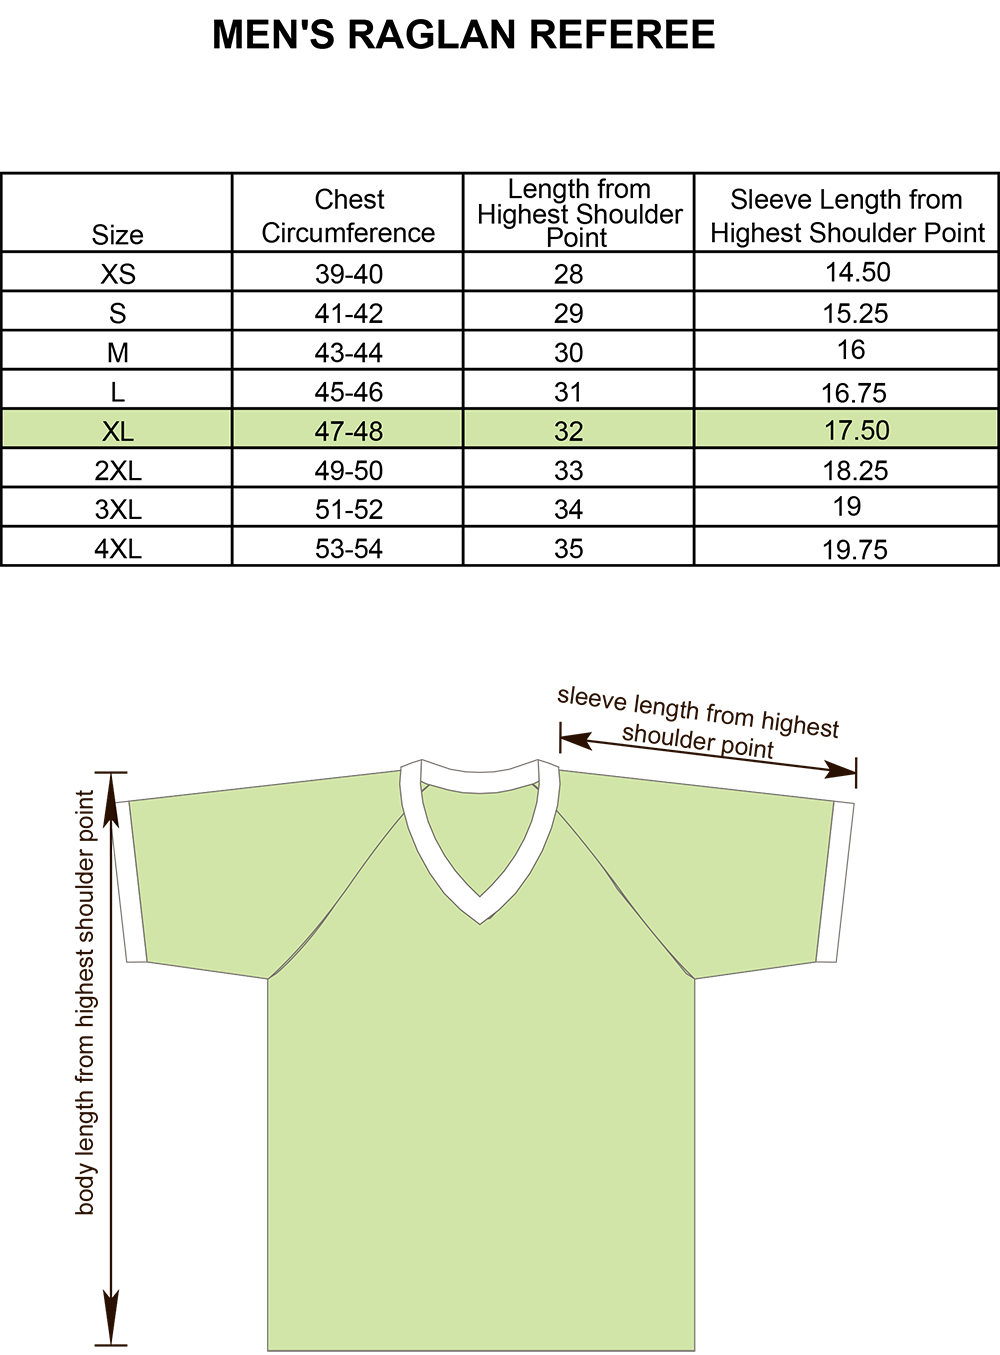 Mens Referee Raglan Shirt Size Chart Image